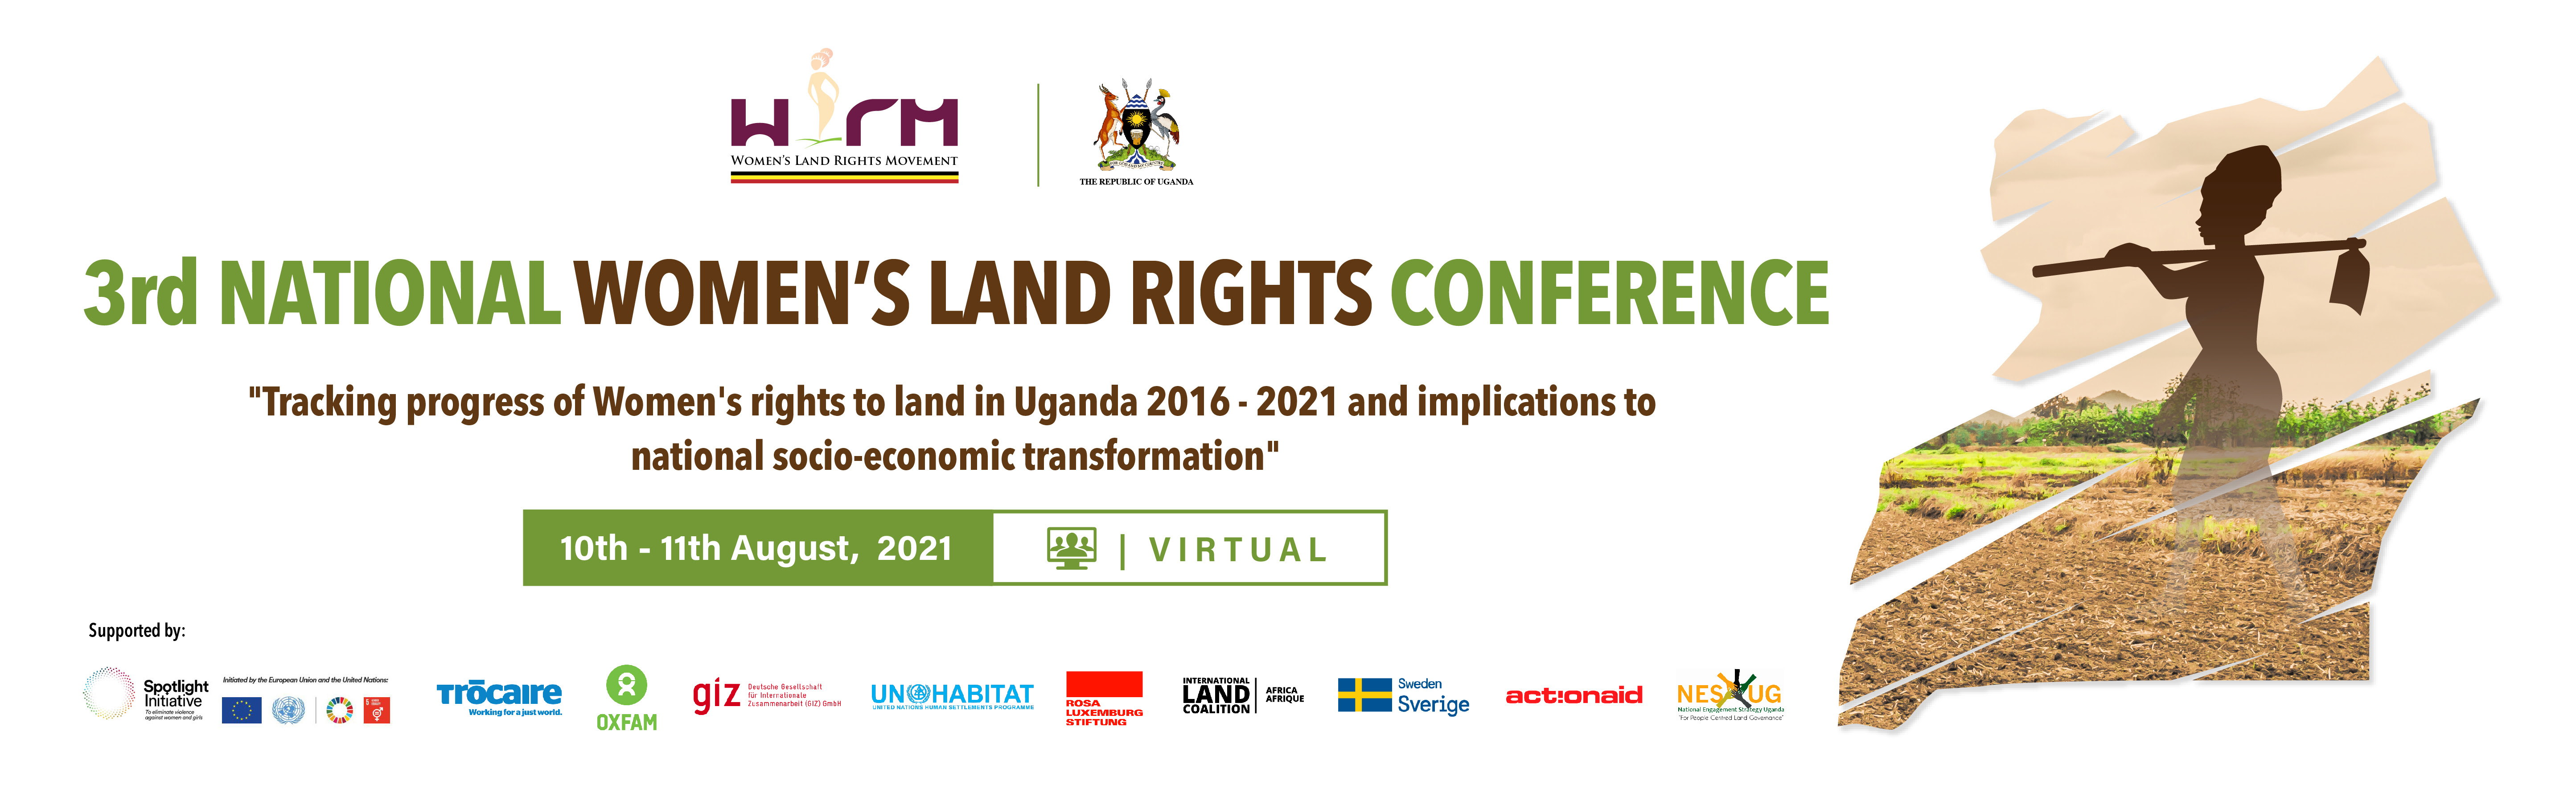 3rd National Women's Land Rights Conference